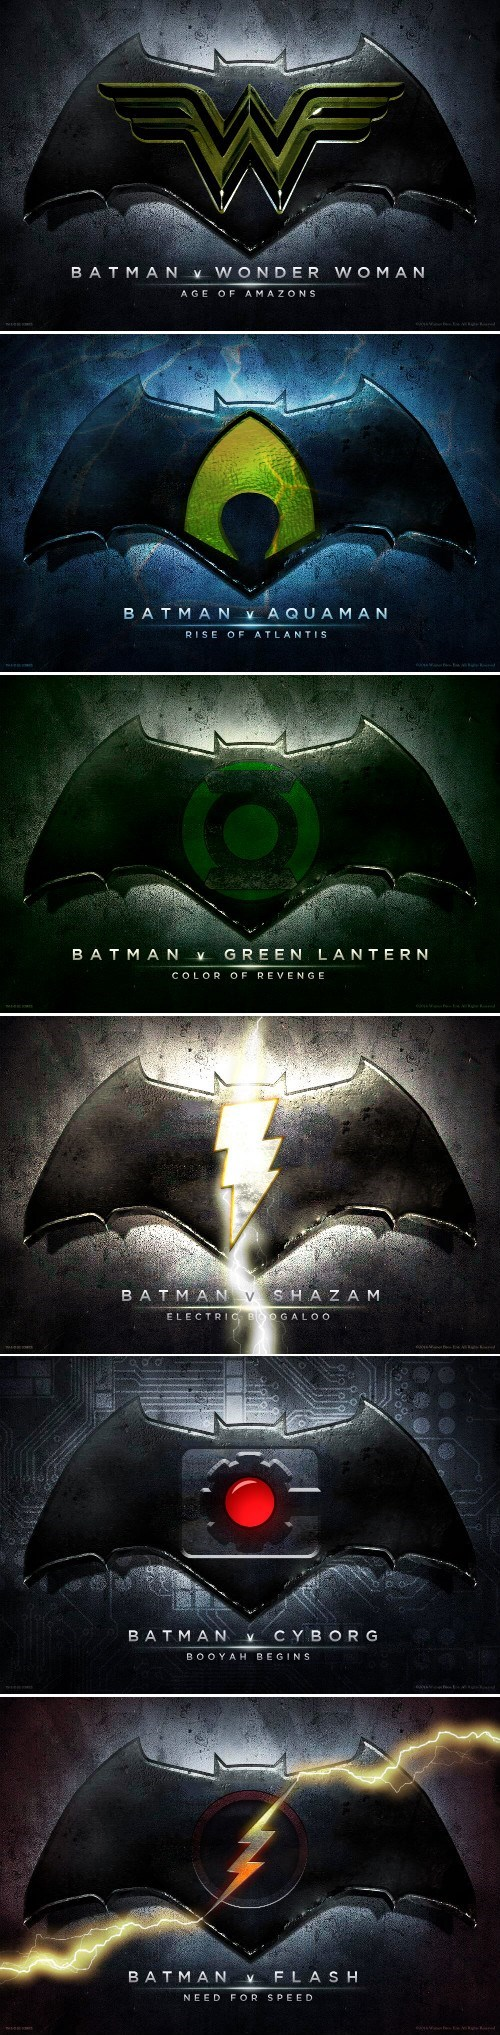 justice league,logo,Batman v Superman